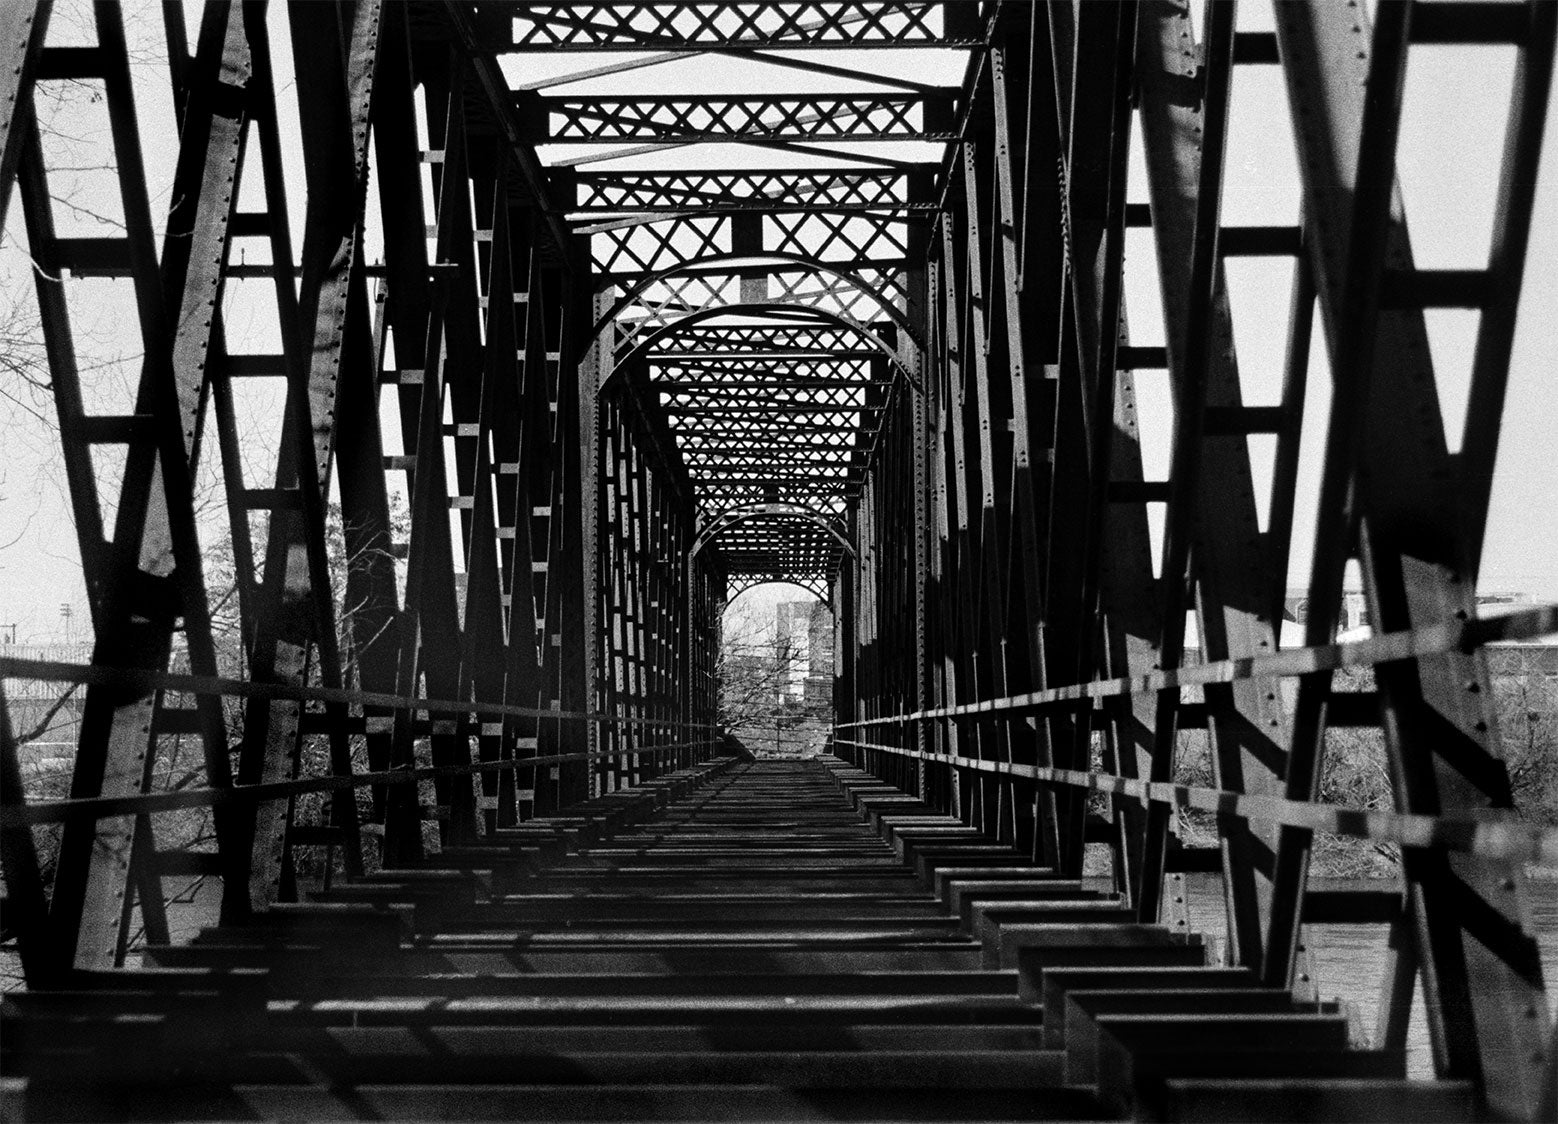 Train Bridge, Minimalist Black and White